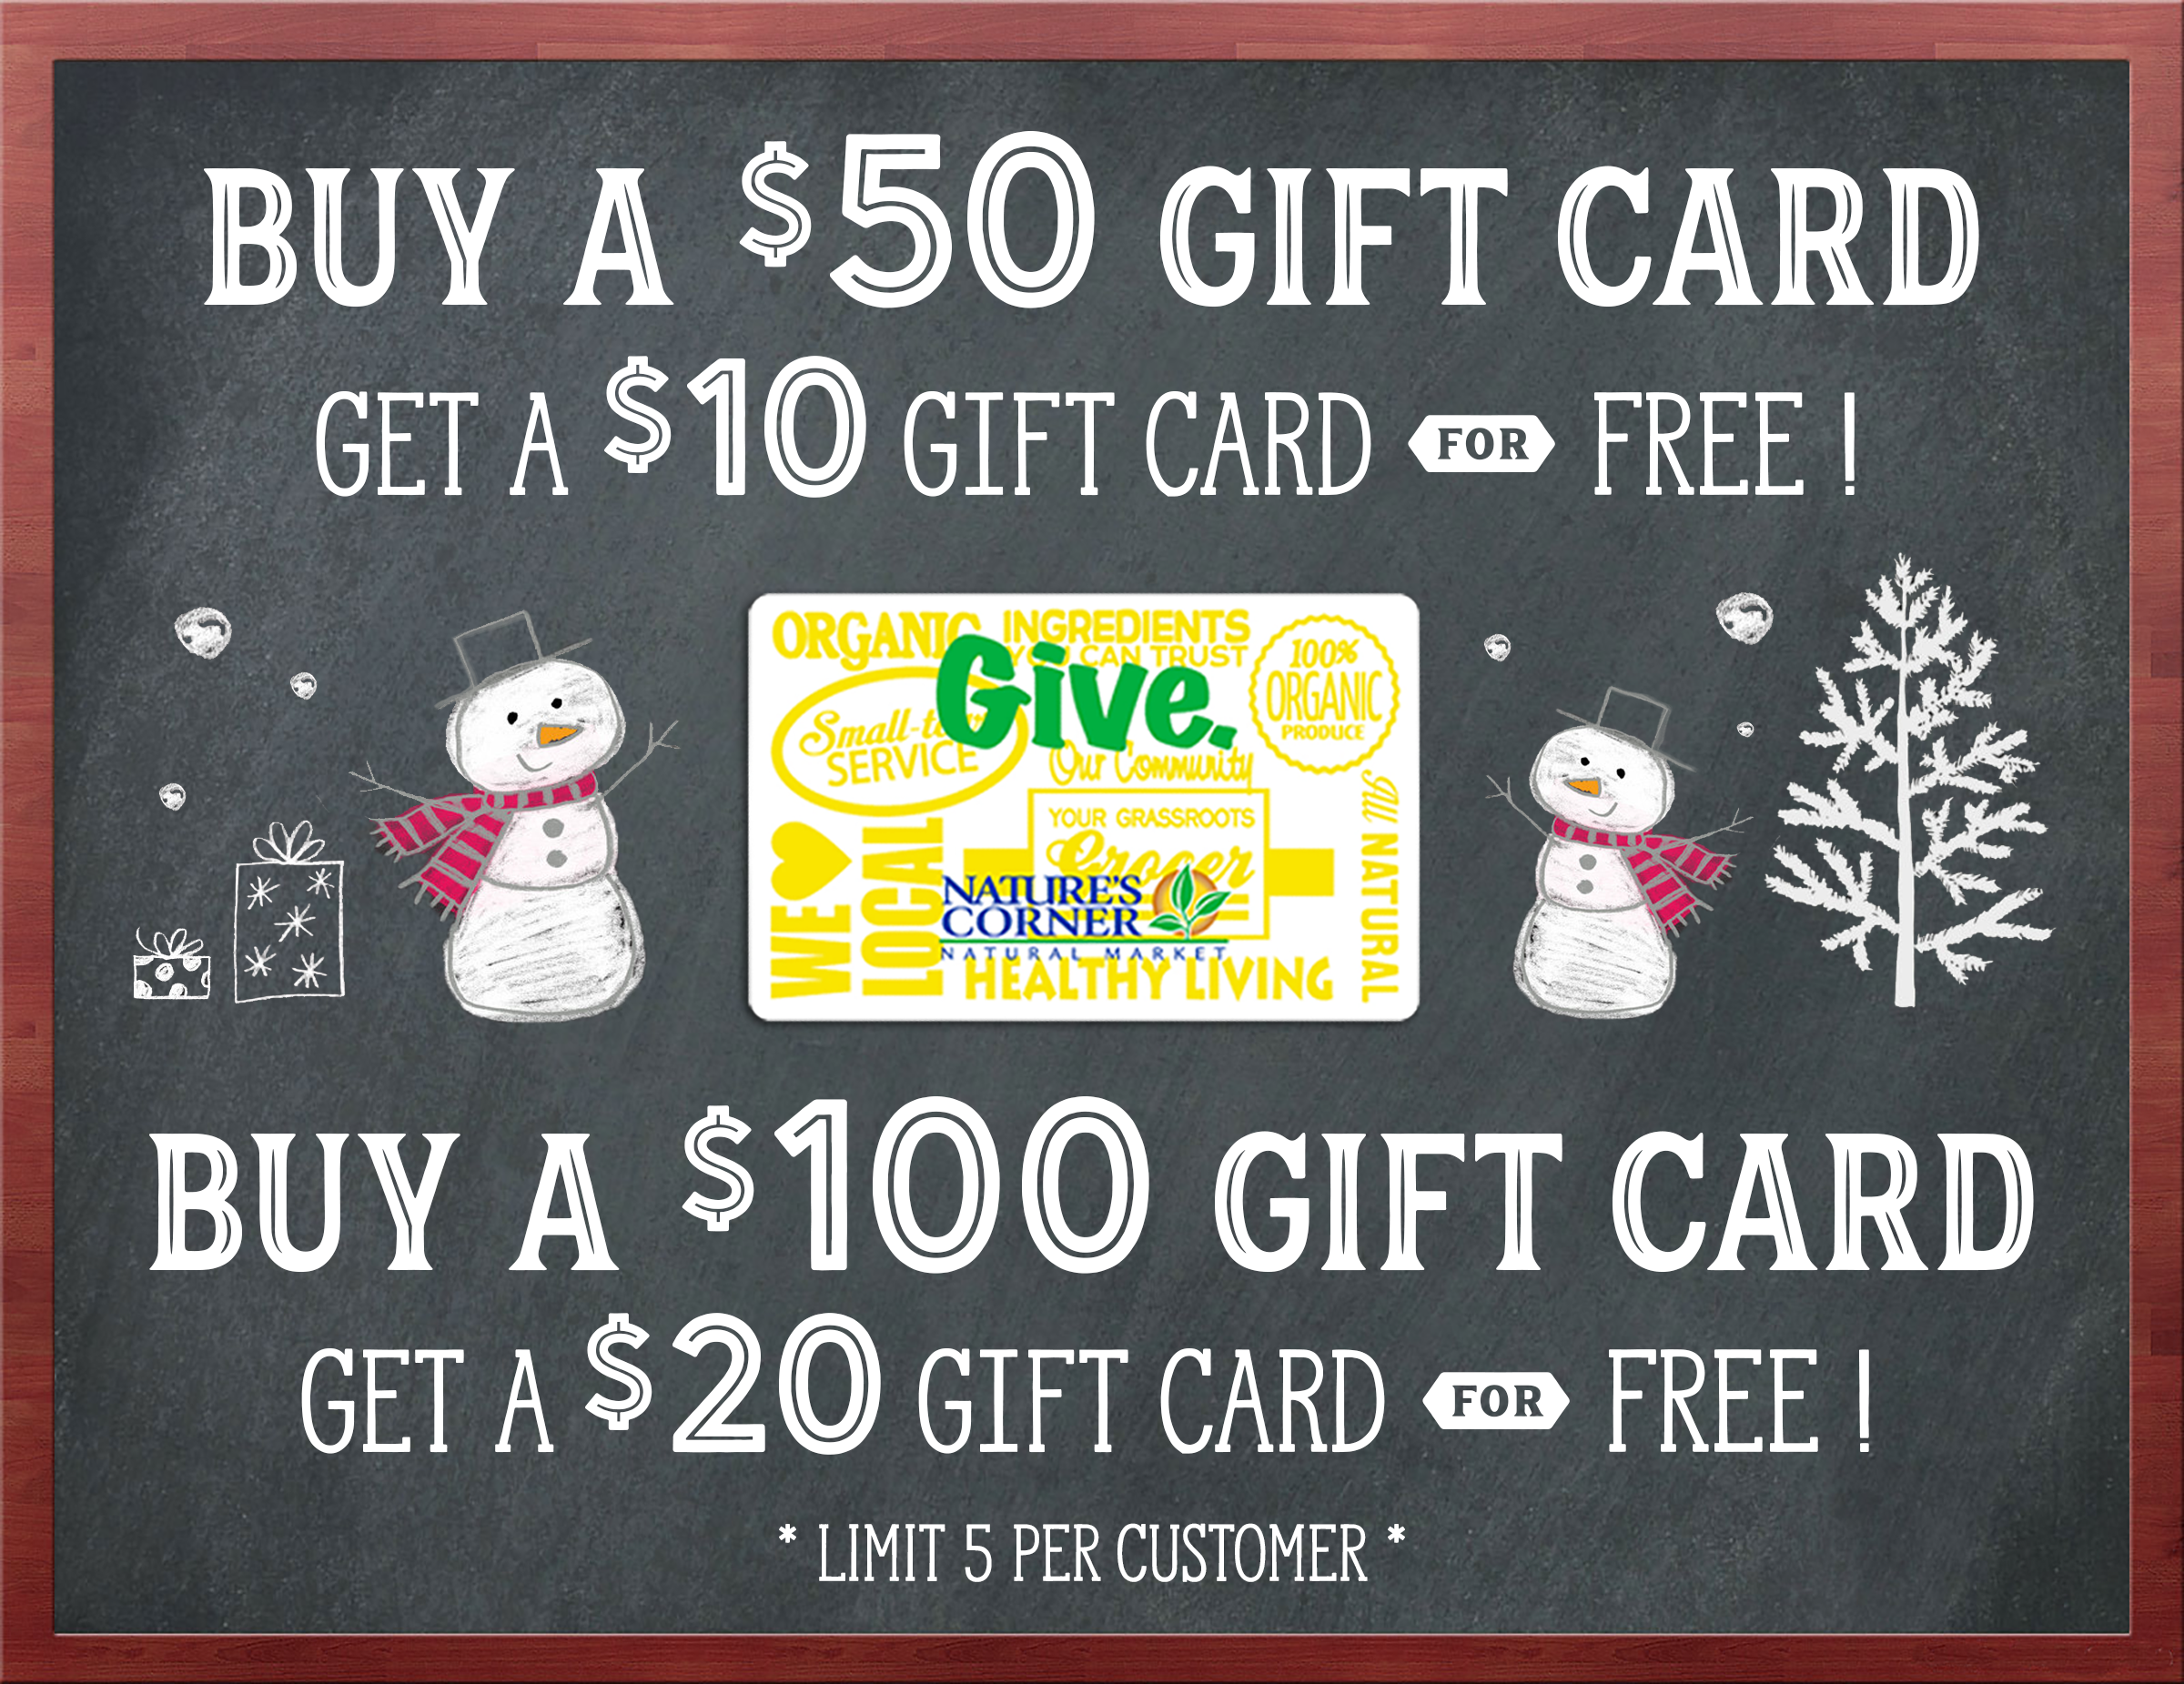 Starts tomorrow holiday gift card sale natures corner natural our annual holiday gift card sale starts tomorrow tuesday december 5th through sunday december 24th when you buy a 50 natures corner gift card negle Images